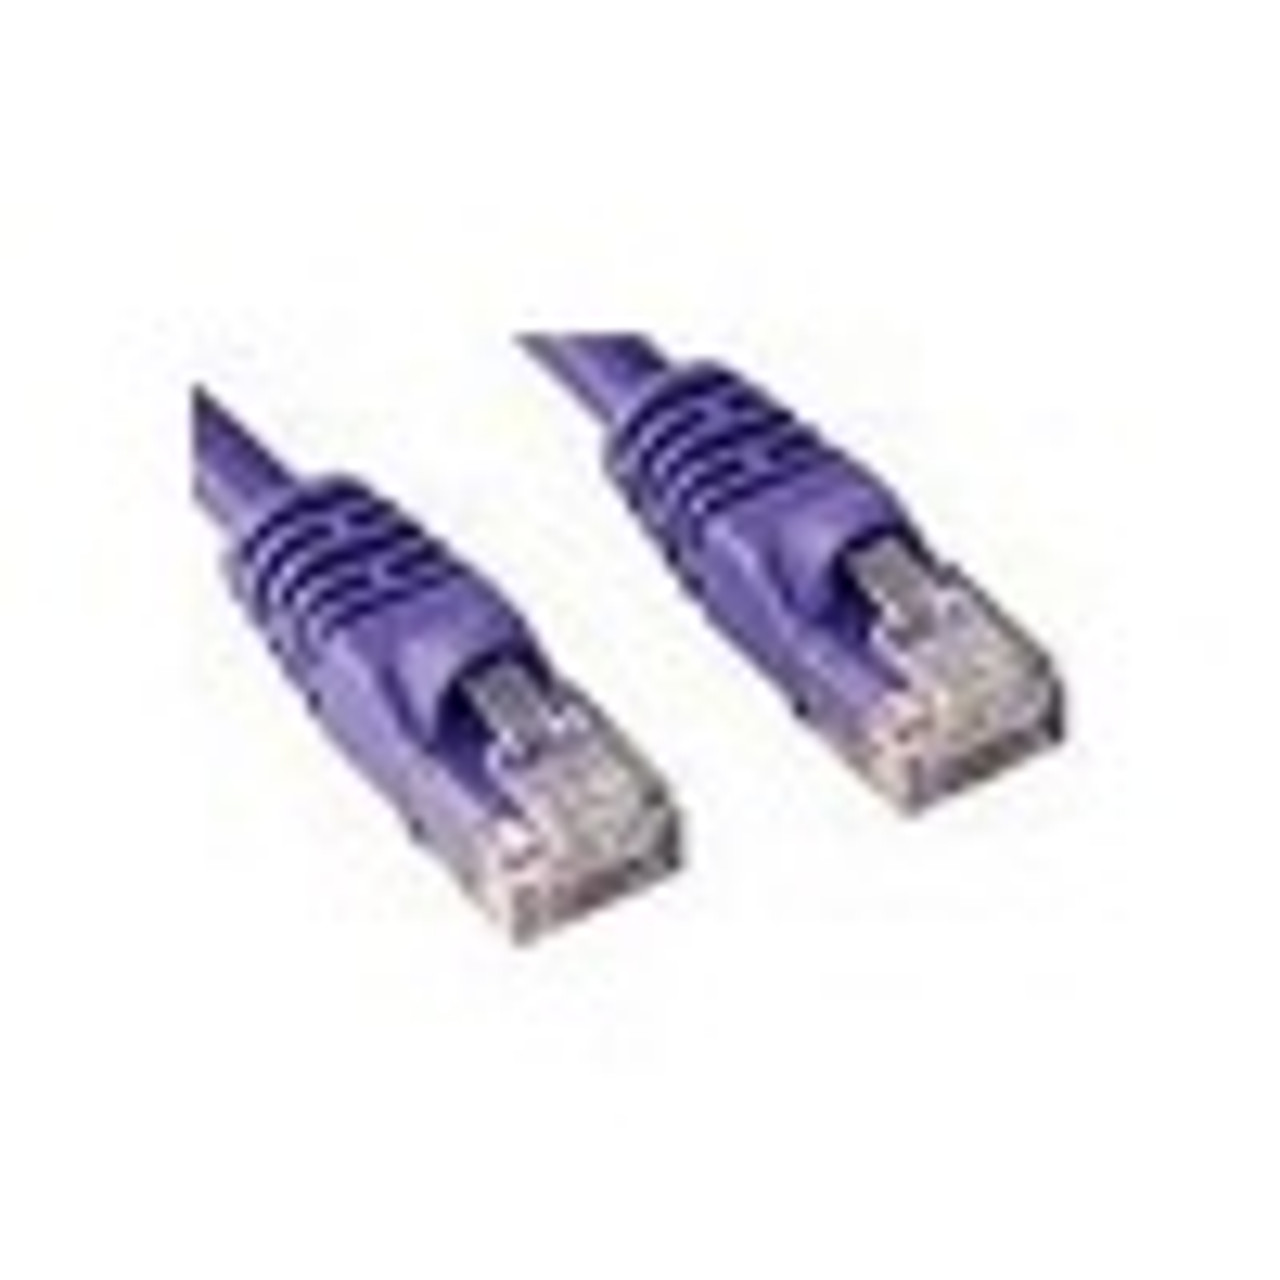 Product image for CAT5e PATCH CORD  5M PURPLE Network Cable 45349 | CX Computer Superstore